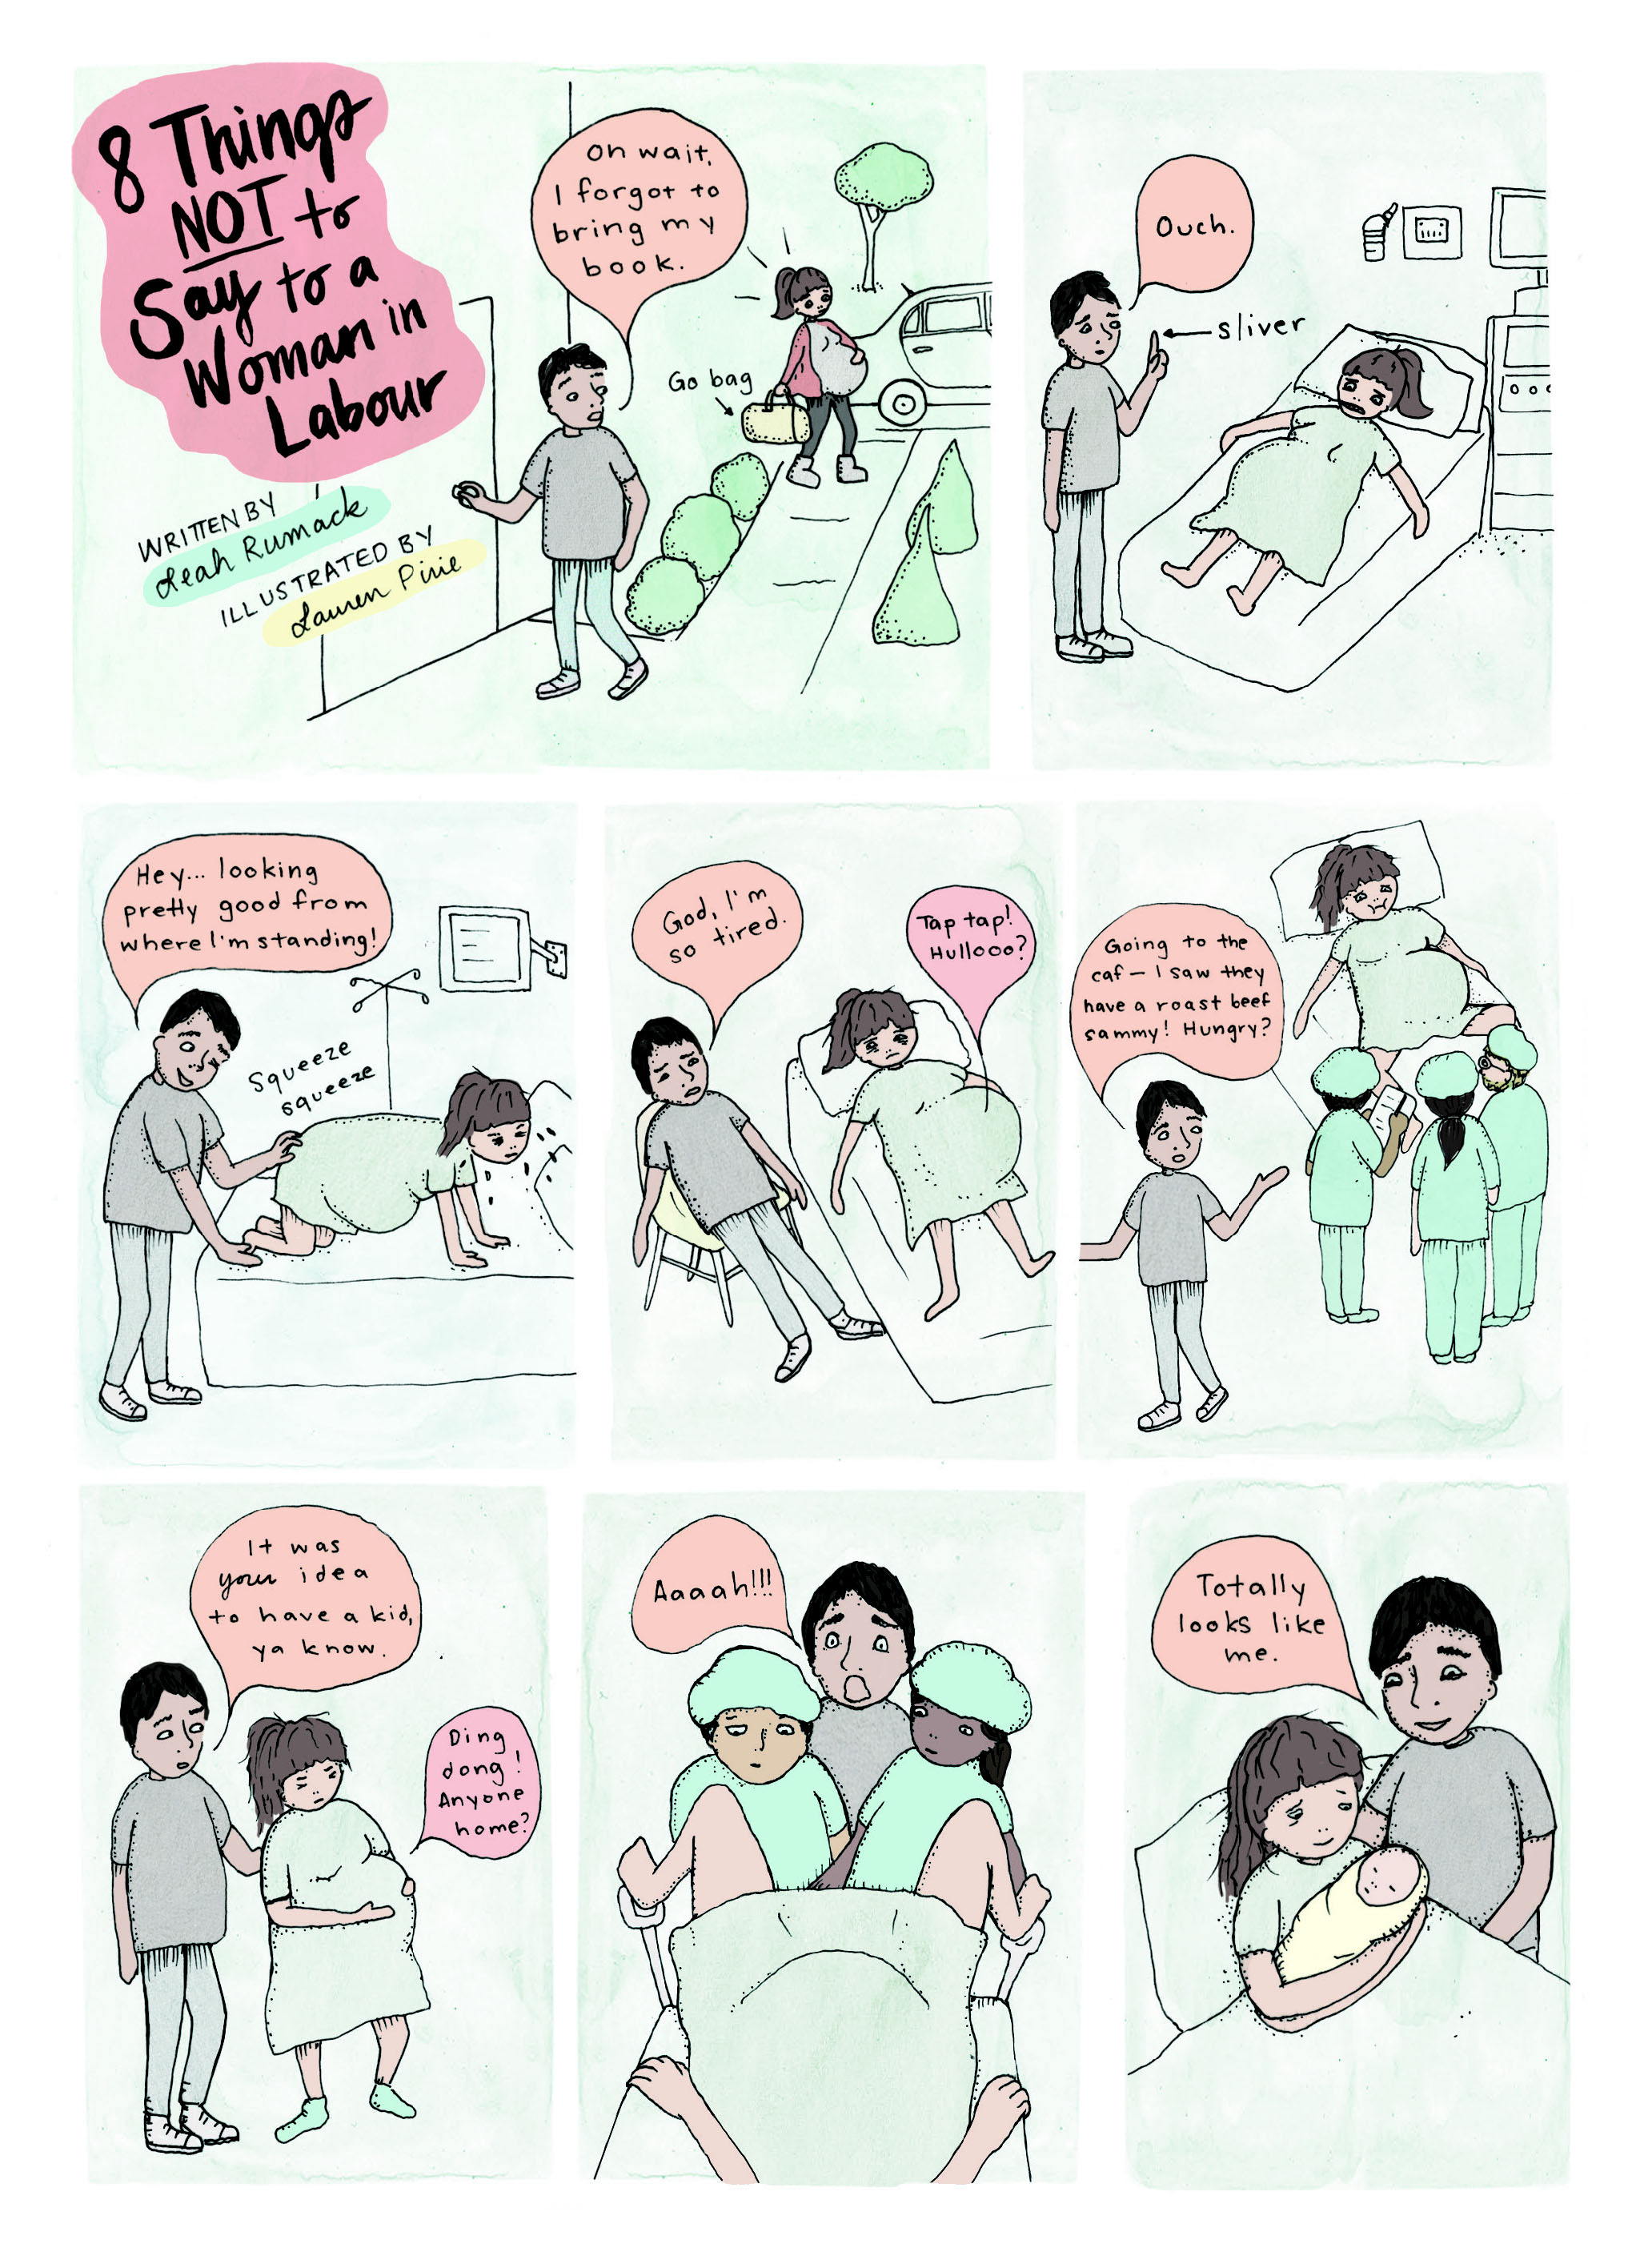 8 Things NOT to Say to a Woman in Labour